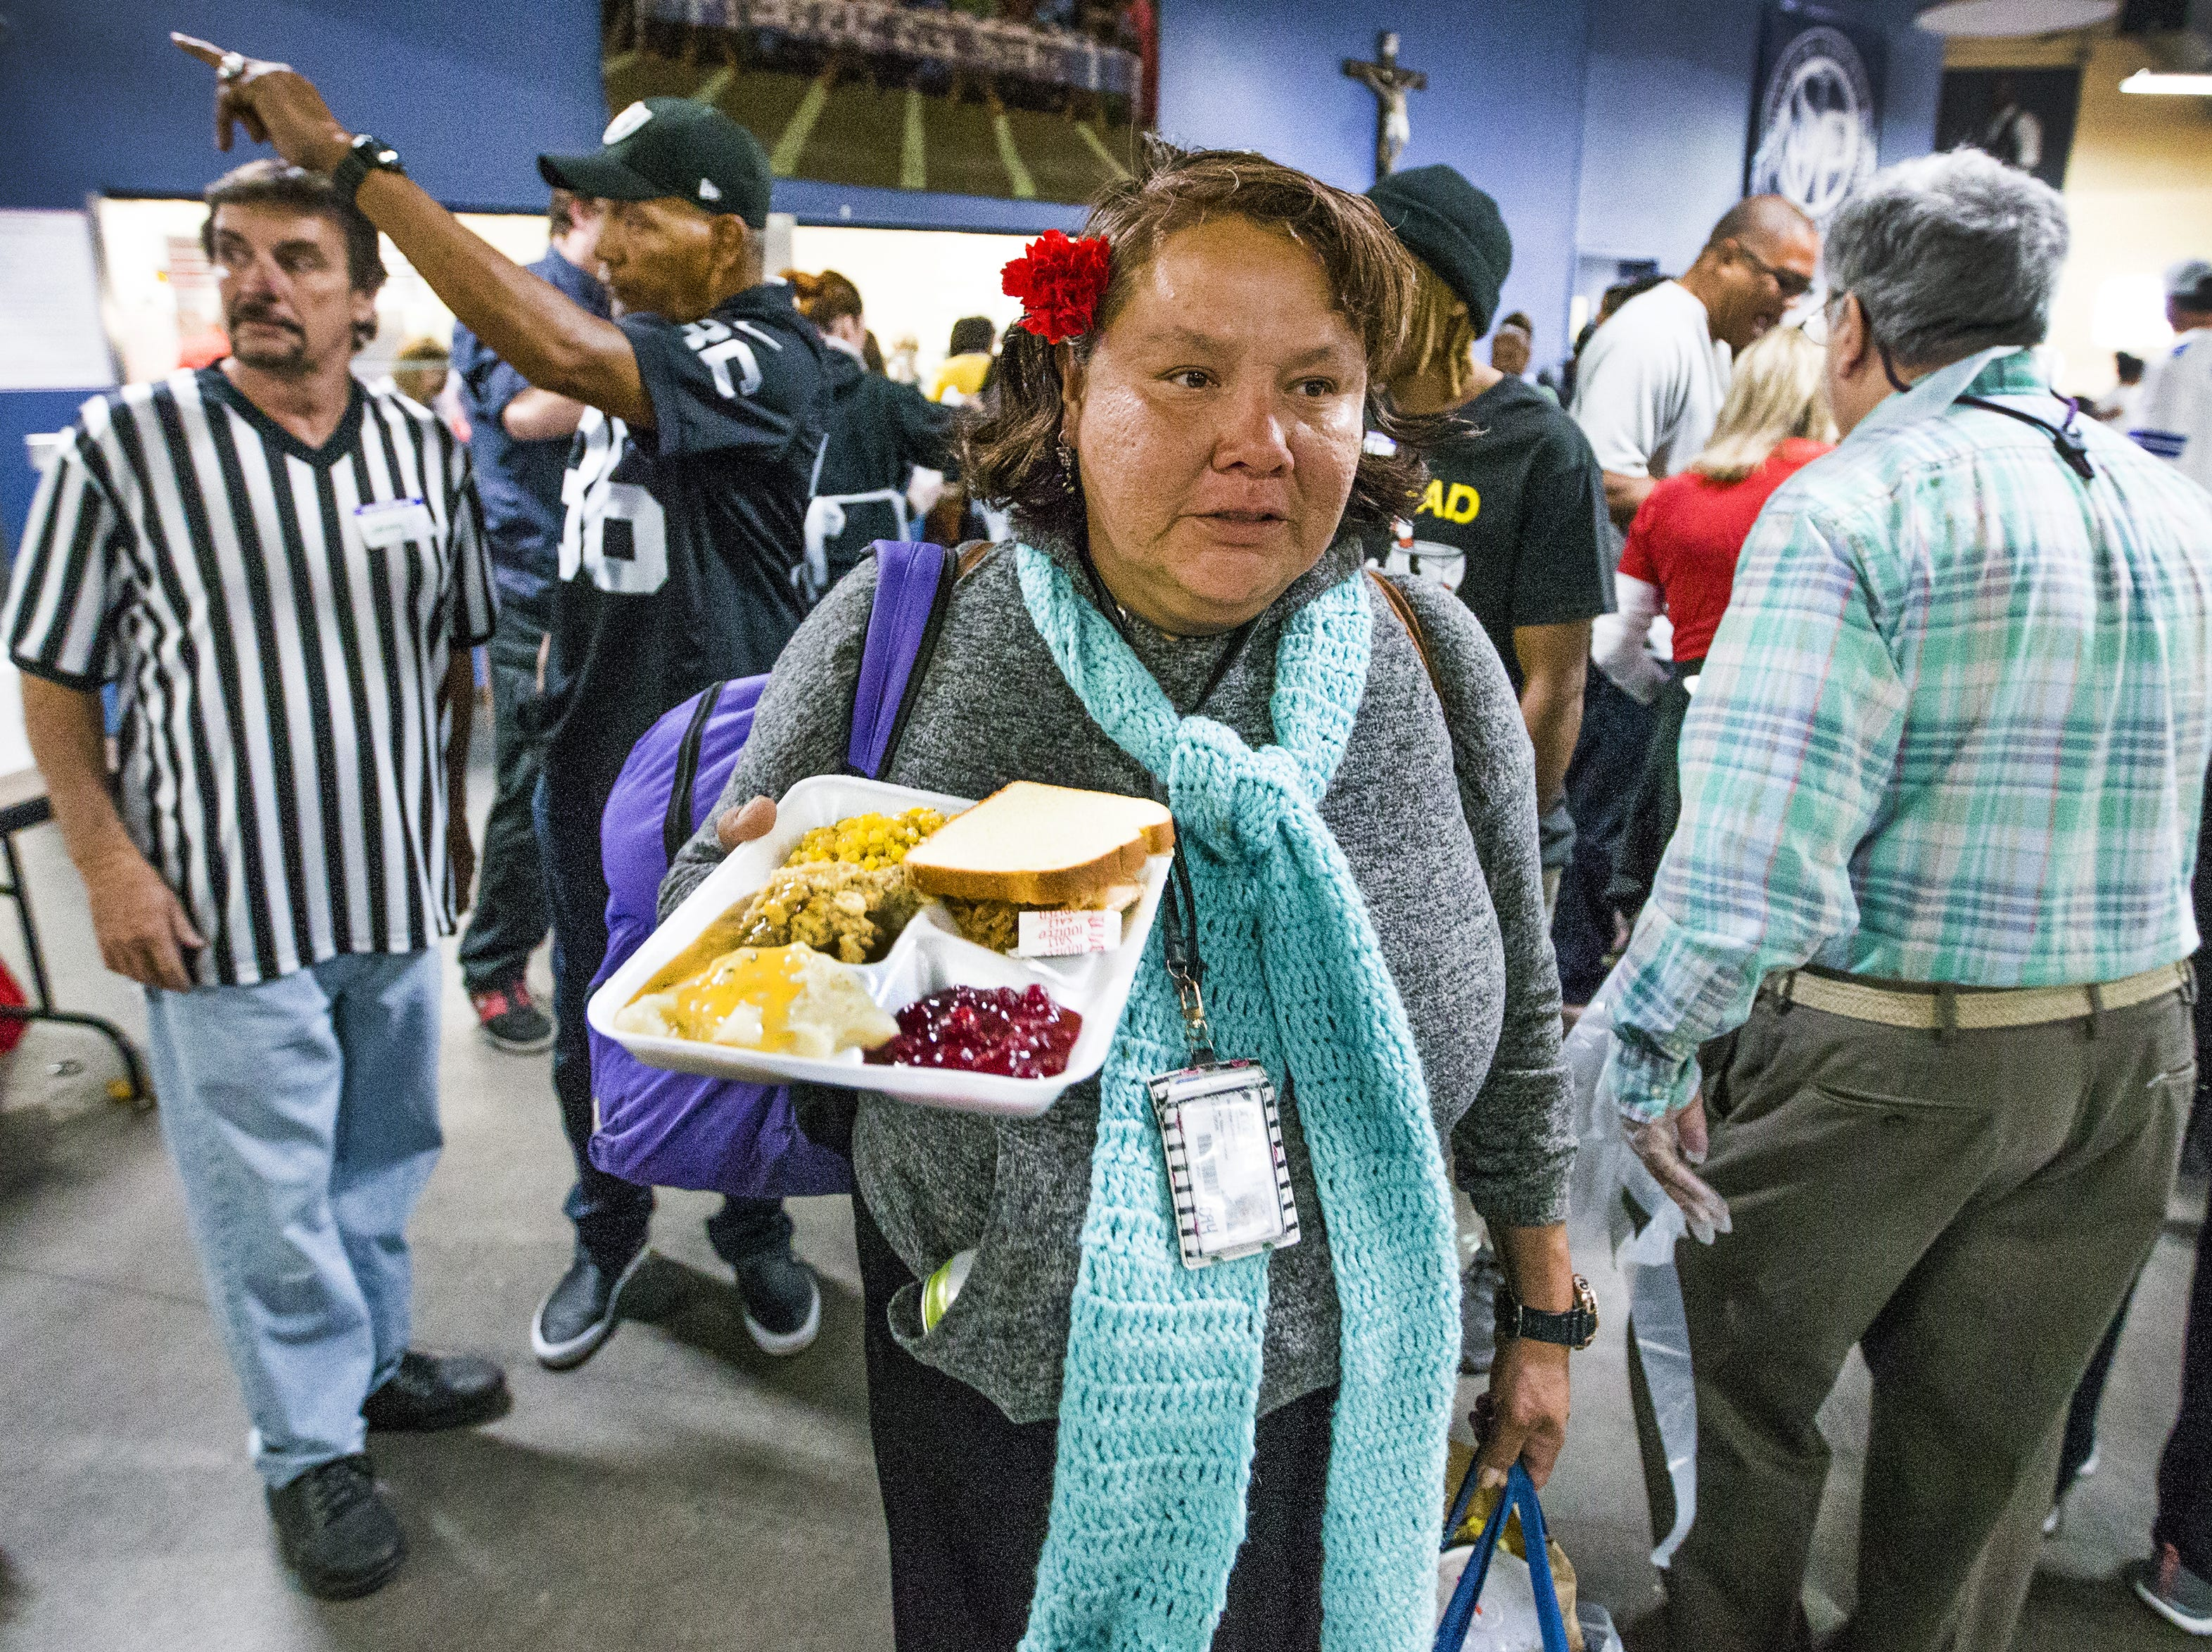 Natasha Claw carries her plate to a table to enjoy a Thanksgiving Day meal served by volunteers at the St. Vincent de Paul Society Human Services Campus Dining Room in Phoenix, Thursday, November 22, 2018.   Turkey, mashed potatoes and pumpkin pie were on the menu.